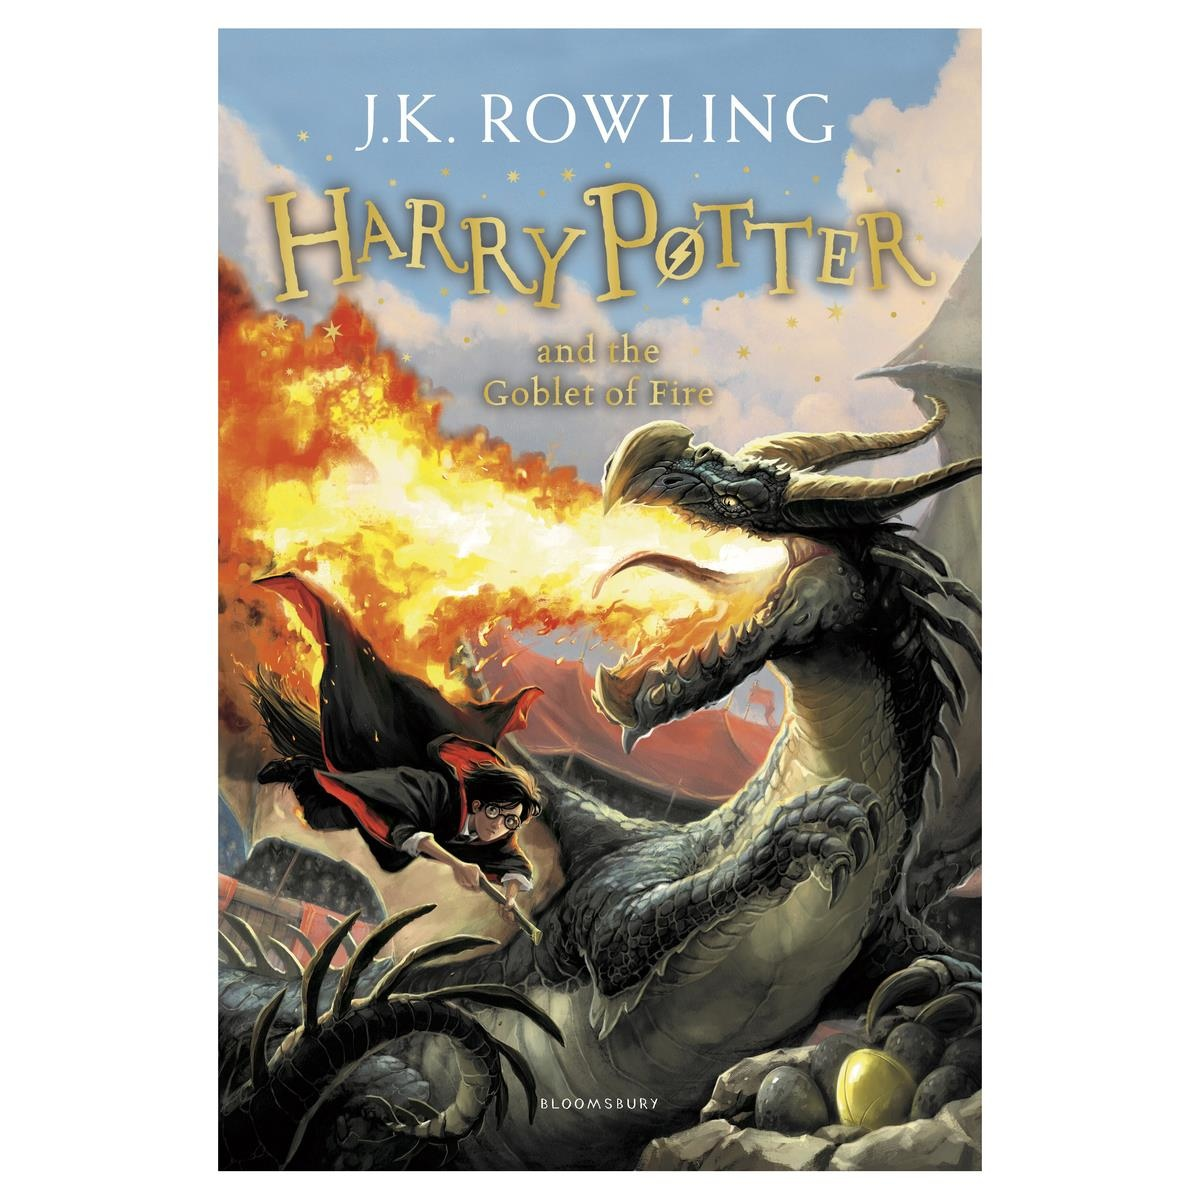 Harry Potter Book Kmart : Harry potter and the goblet of fire by j k rowling book